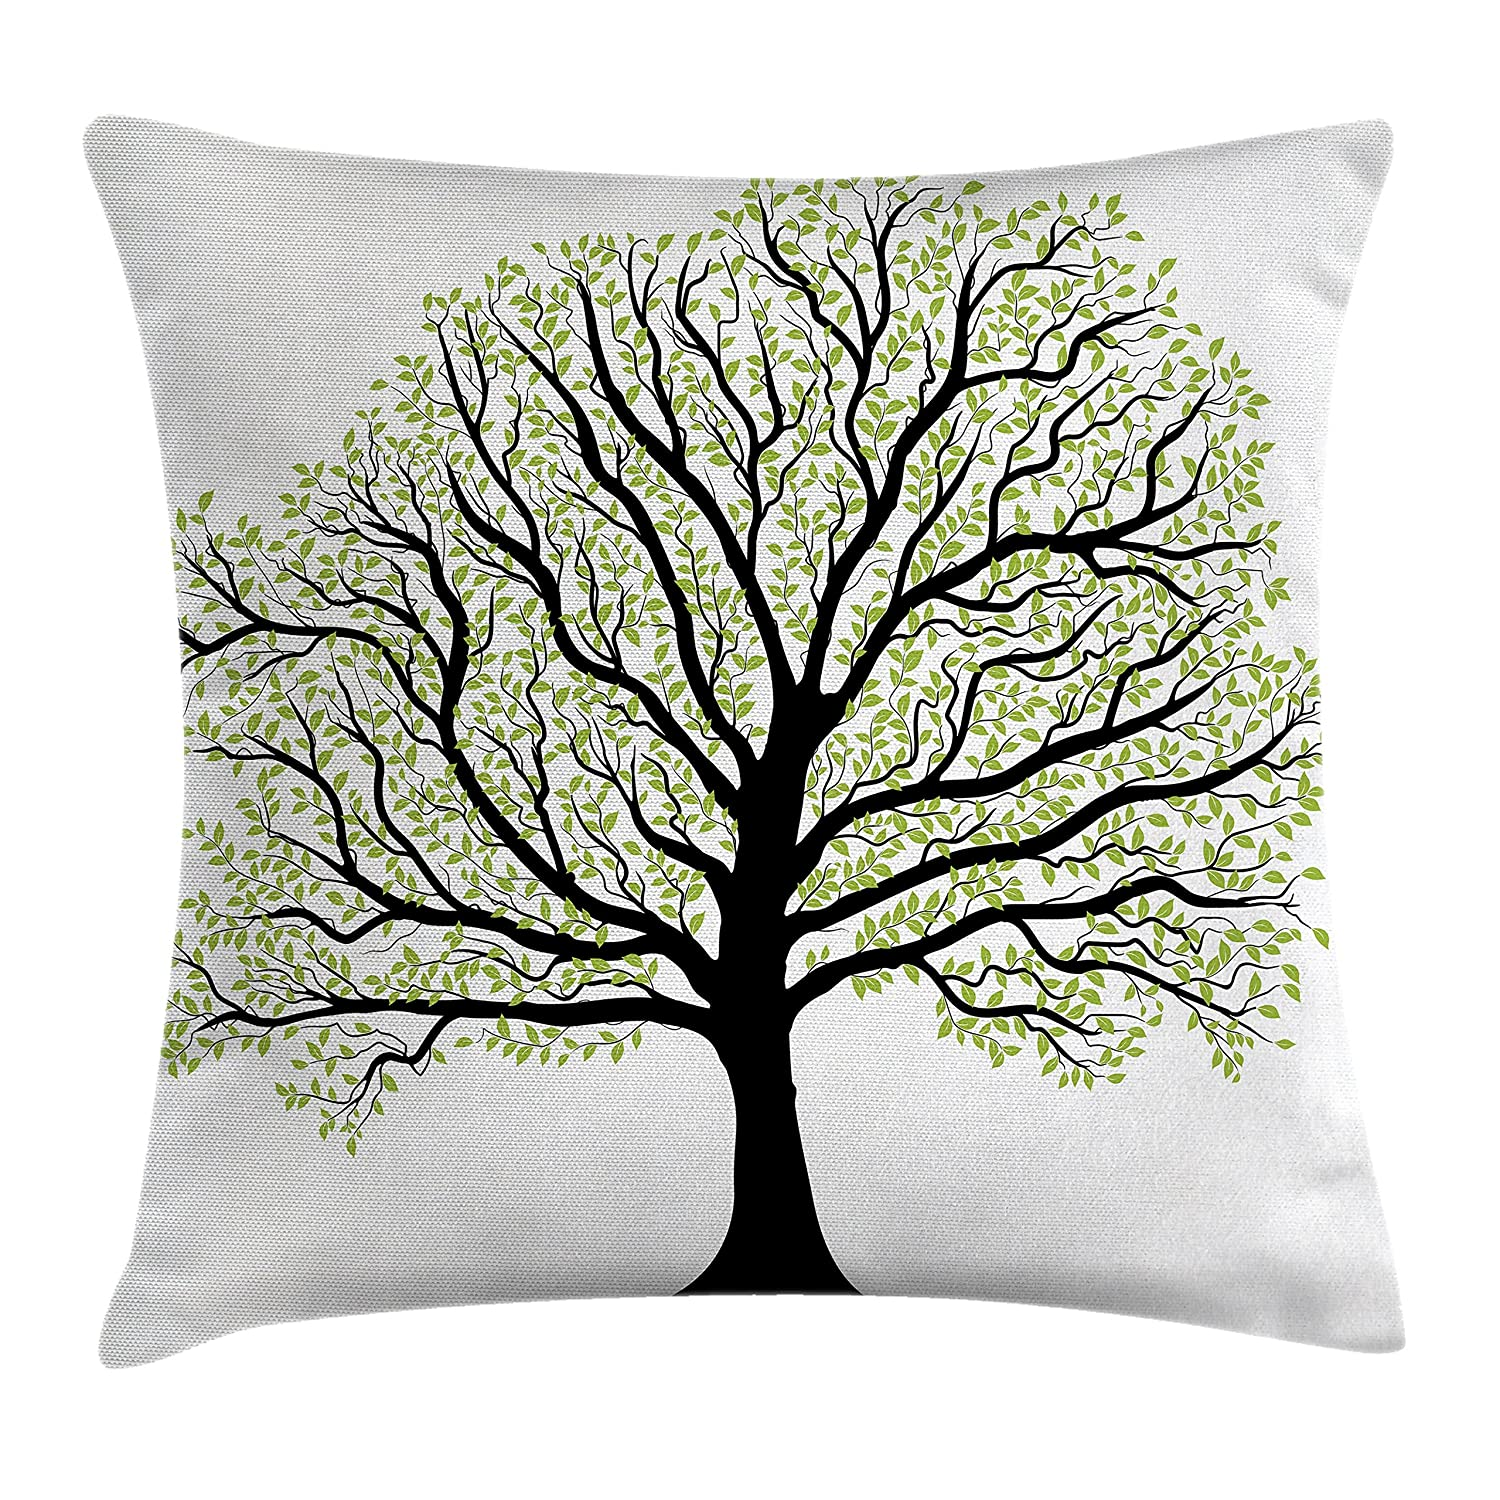 Black White Green Ambesonne Tree of Life Throw Pillow Cushion Cover Big Old Lush Tree with Lot of Leaves and Branches Nature Trust Home Art Decorative Square Accent Pillow Case 20 X 20 Inches